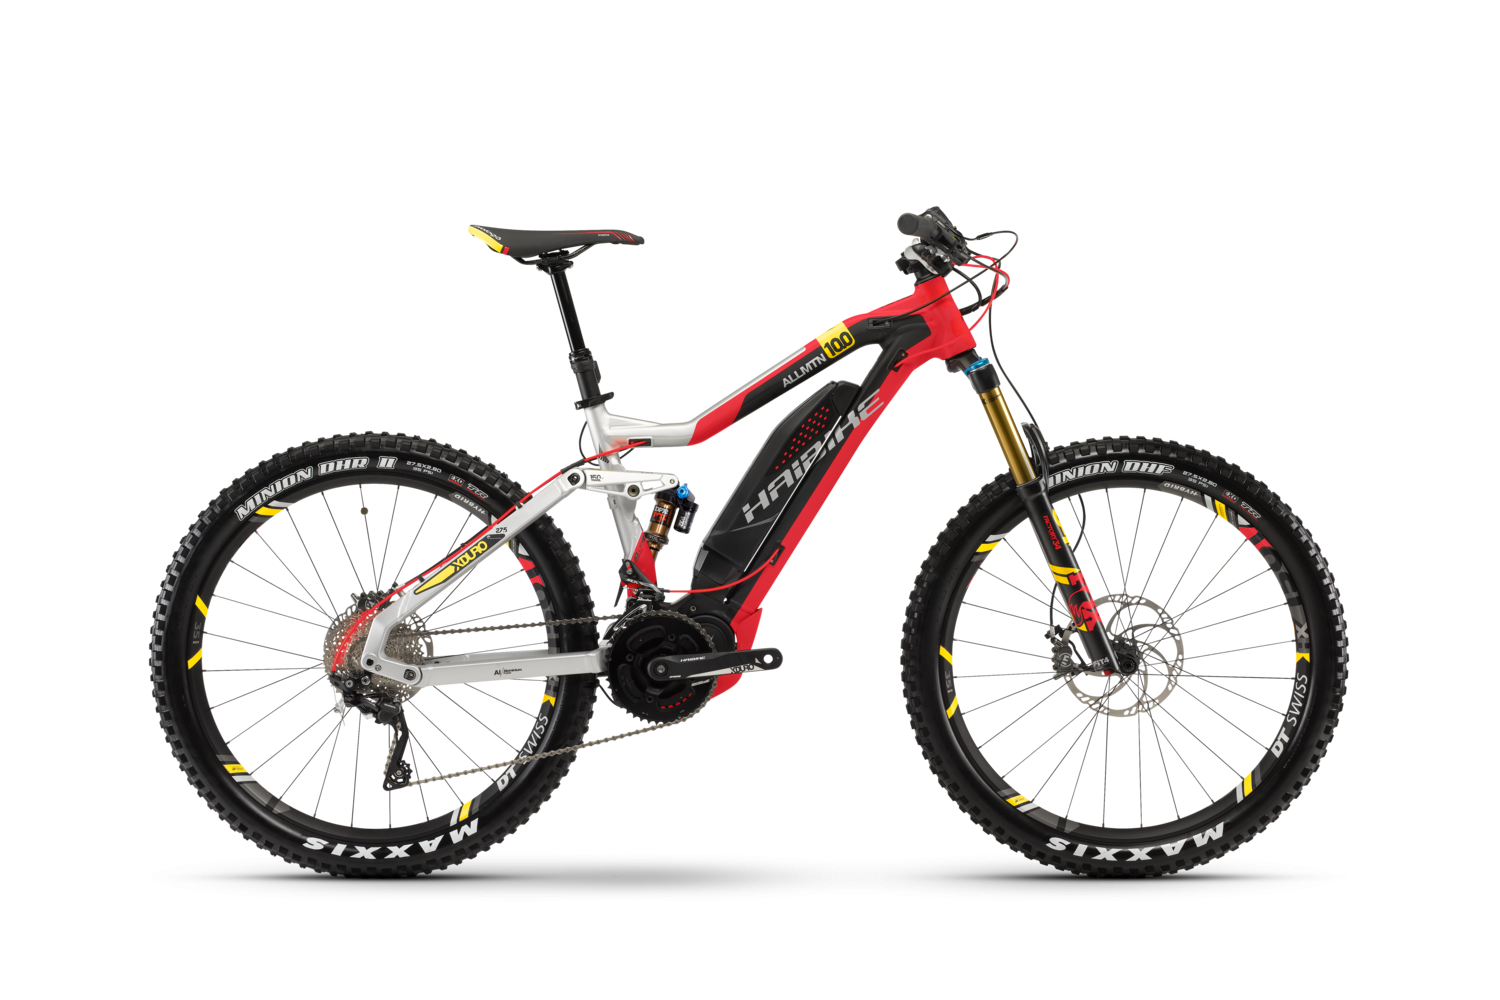 2018 XDURO All-Mountain 10.0 E-Bike